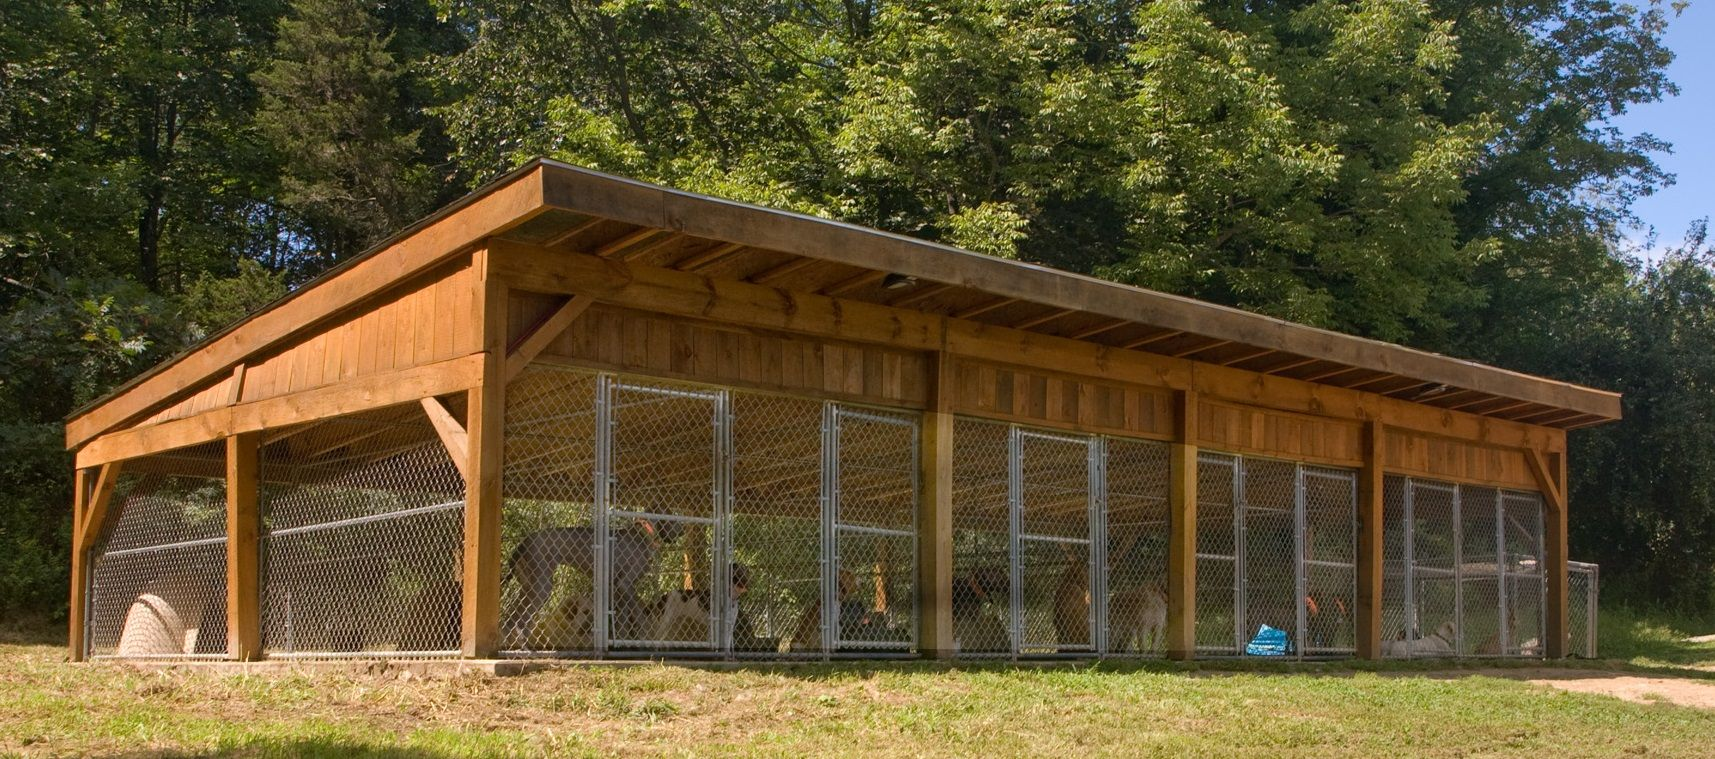 Hunting dog kennel designs bing images dog kennel for Breeding kennel designs